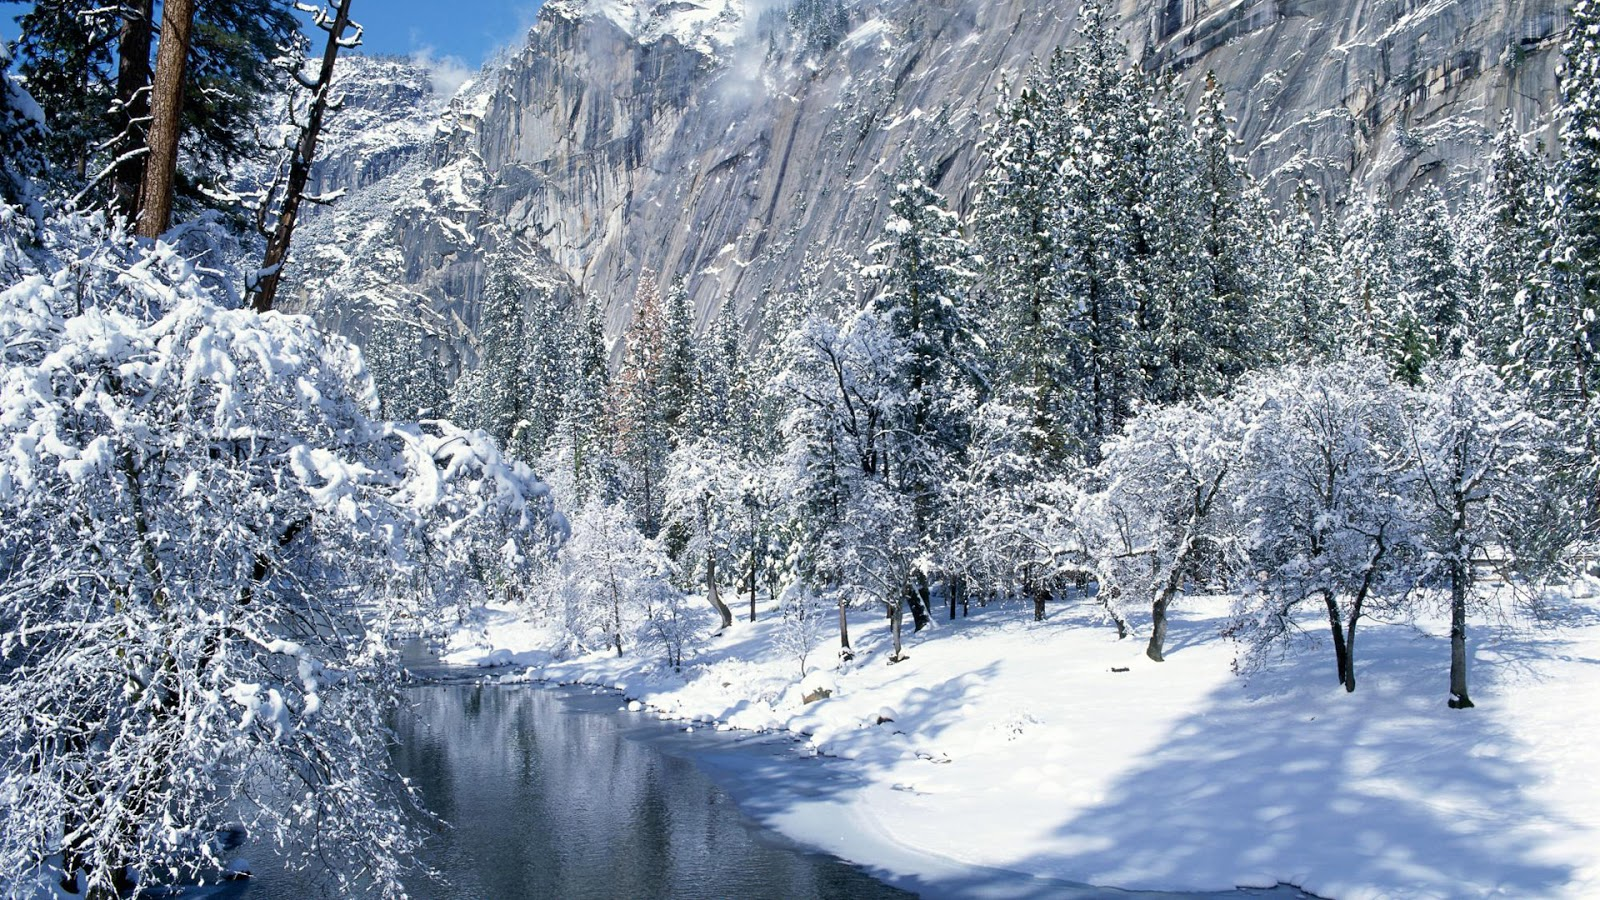 Winter season Nature beautiful HD Desktop wallpapers Natural High 1600x900